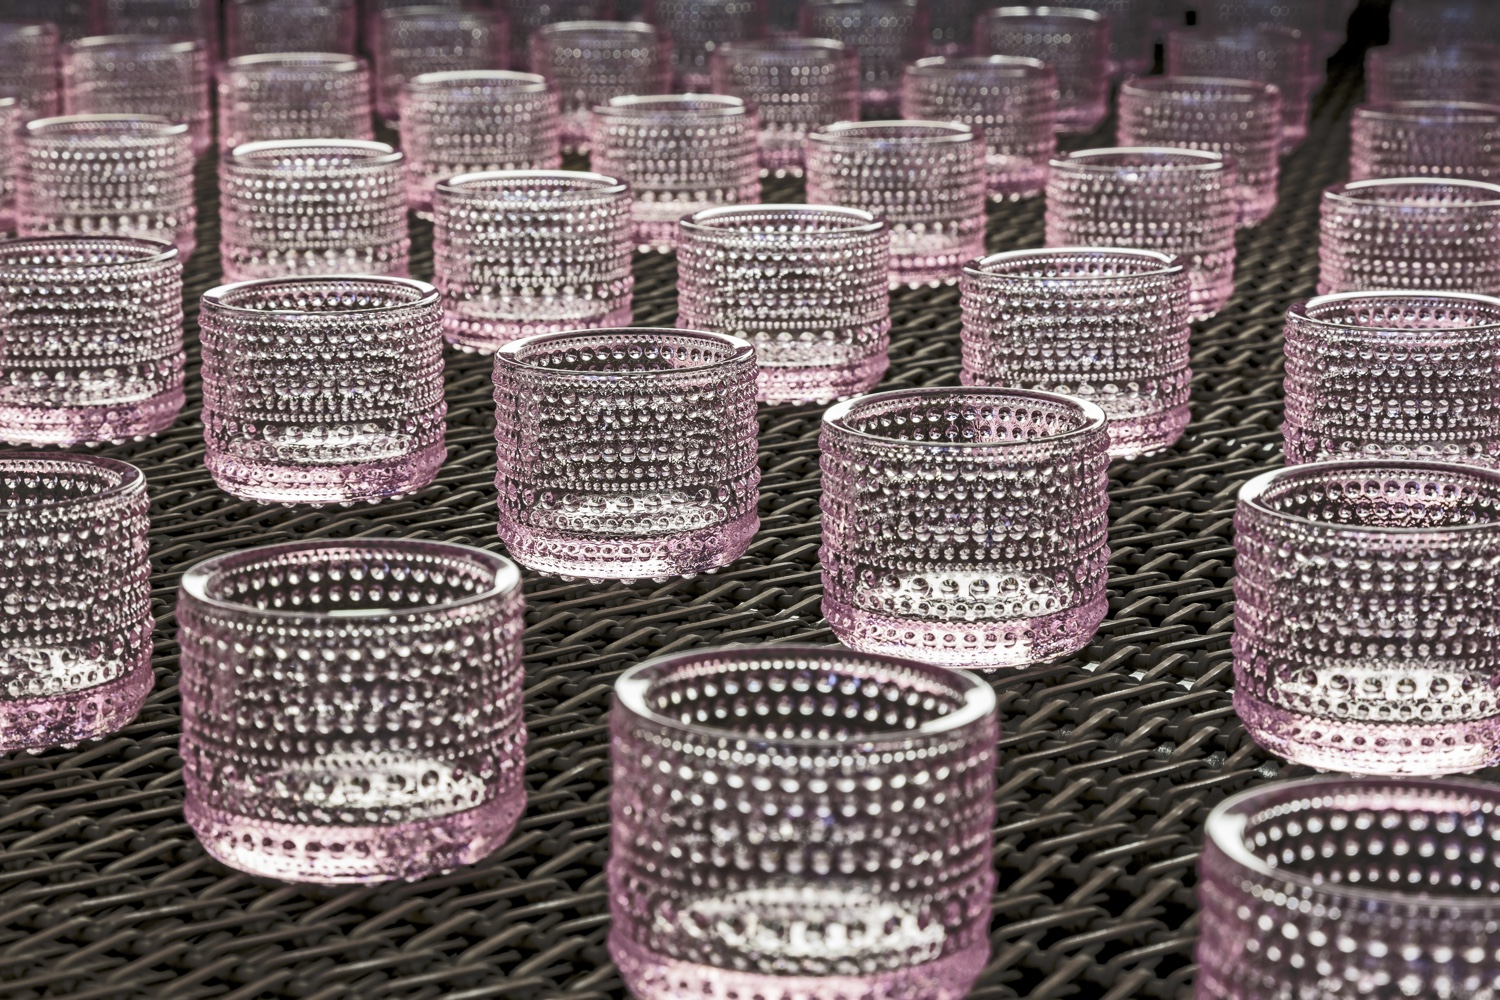 Production of Kastehelmi Votives at the Iittala factory.